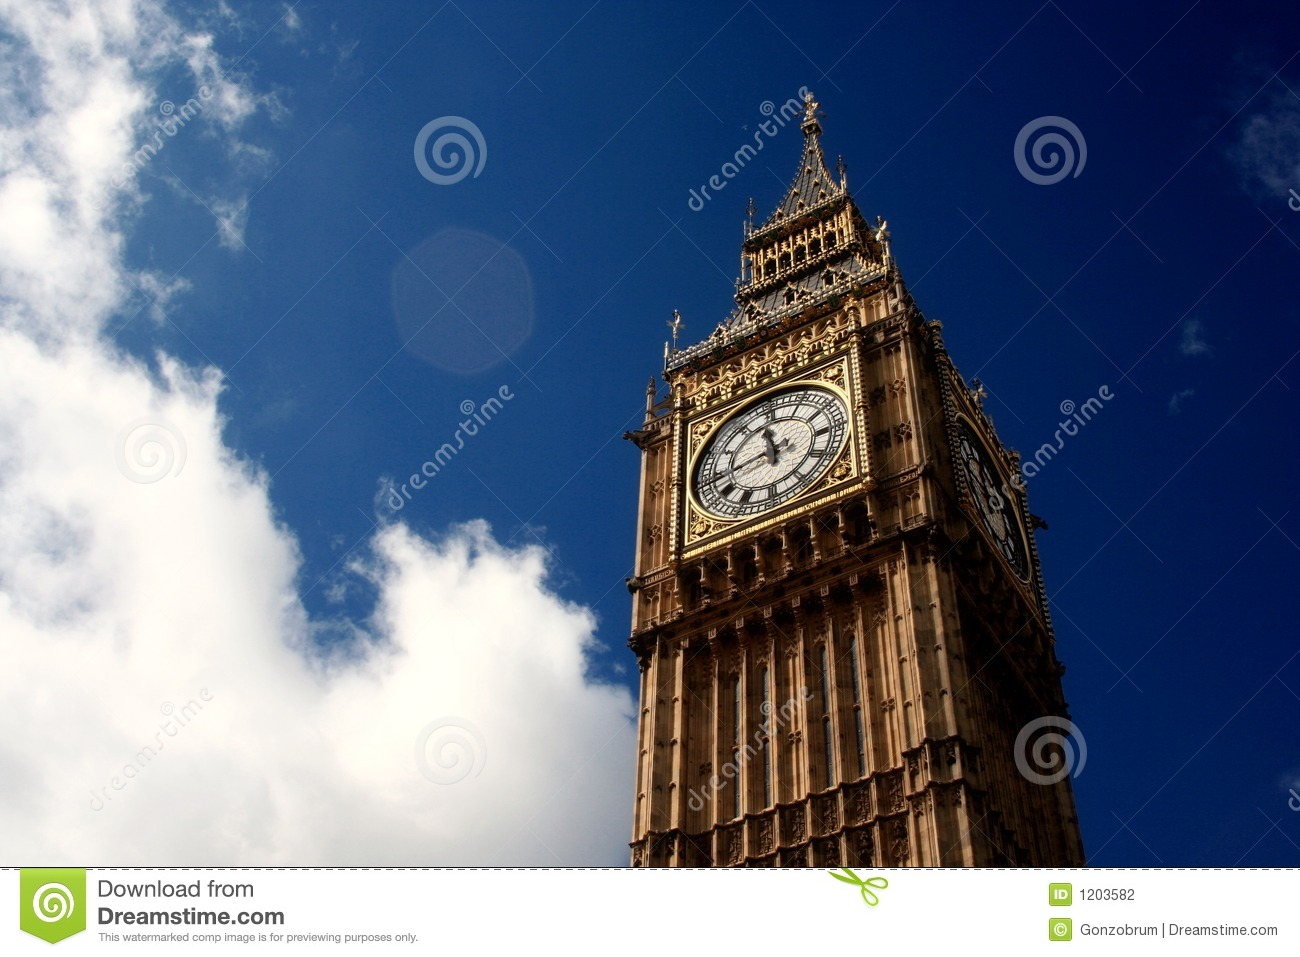 The Legendary Big Ben